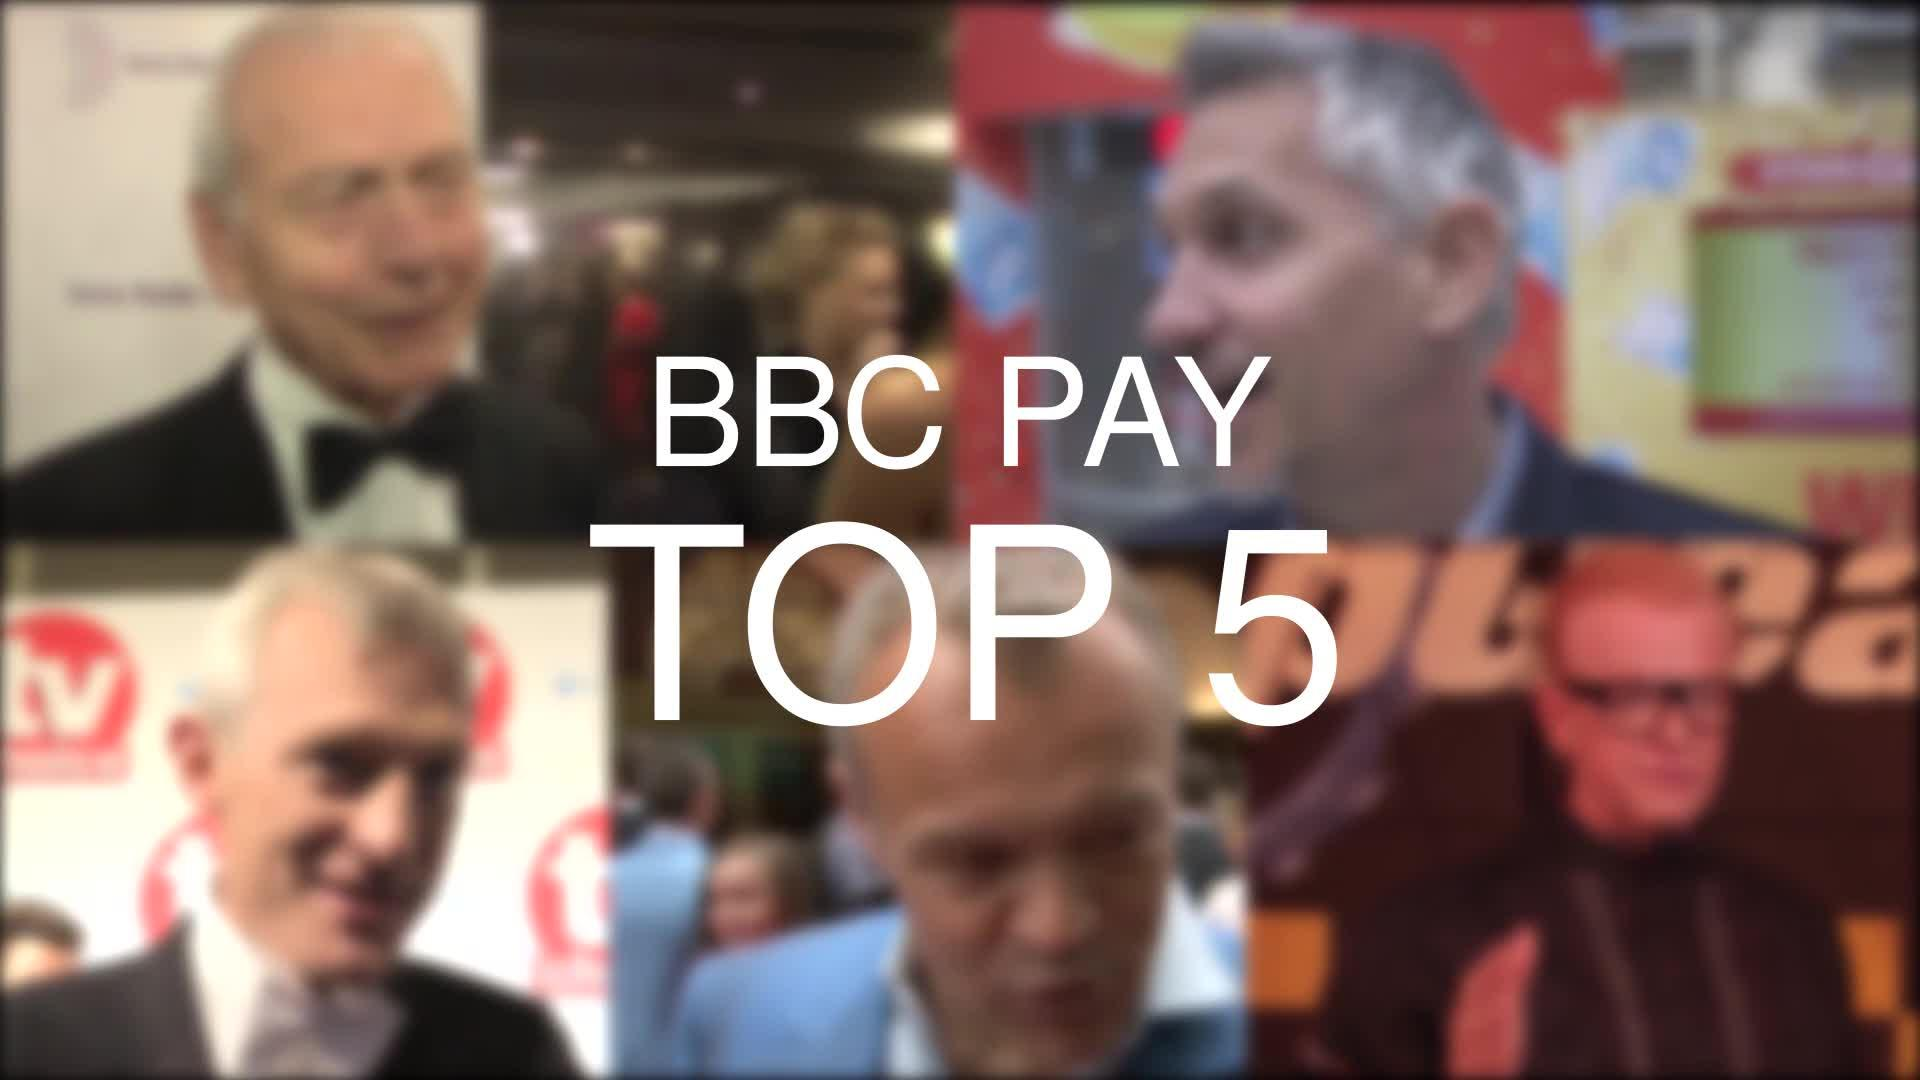 Chris Evans's BBC pay packet dwarfs top-earning female